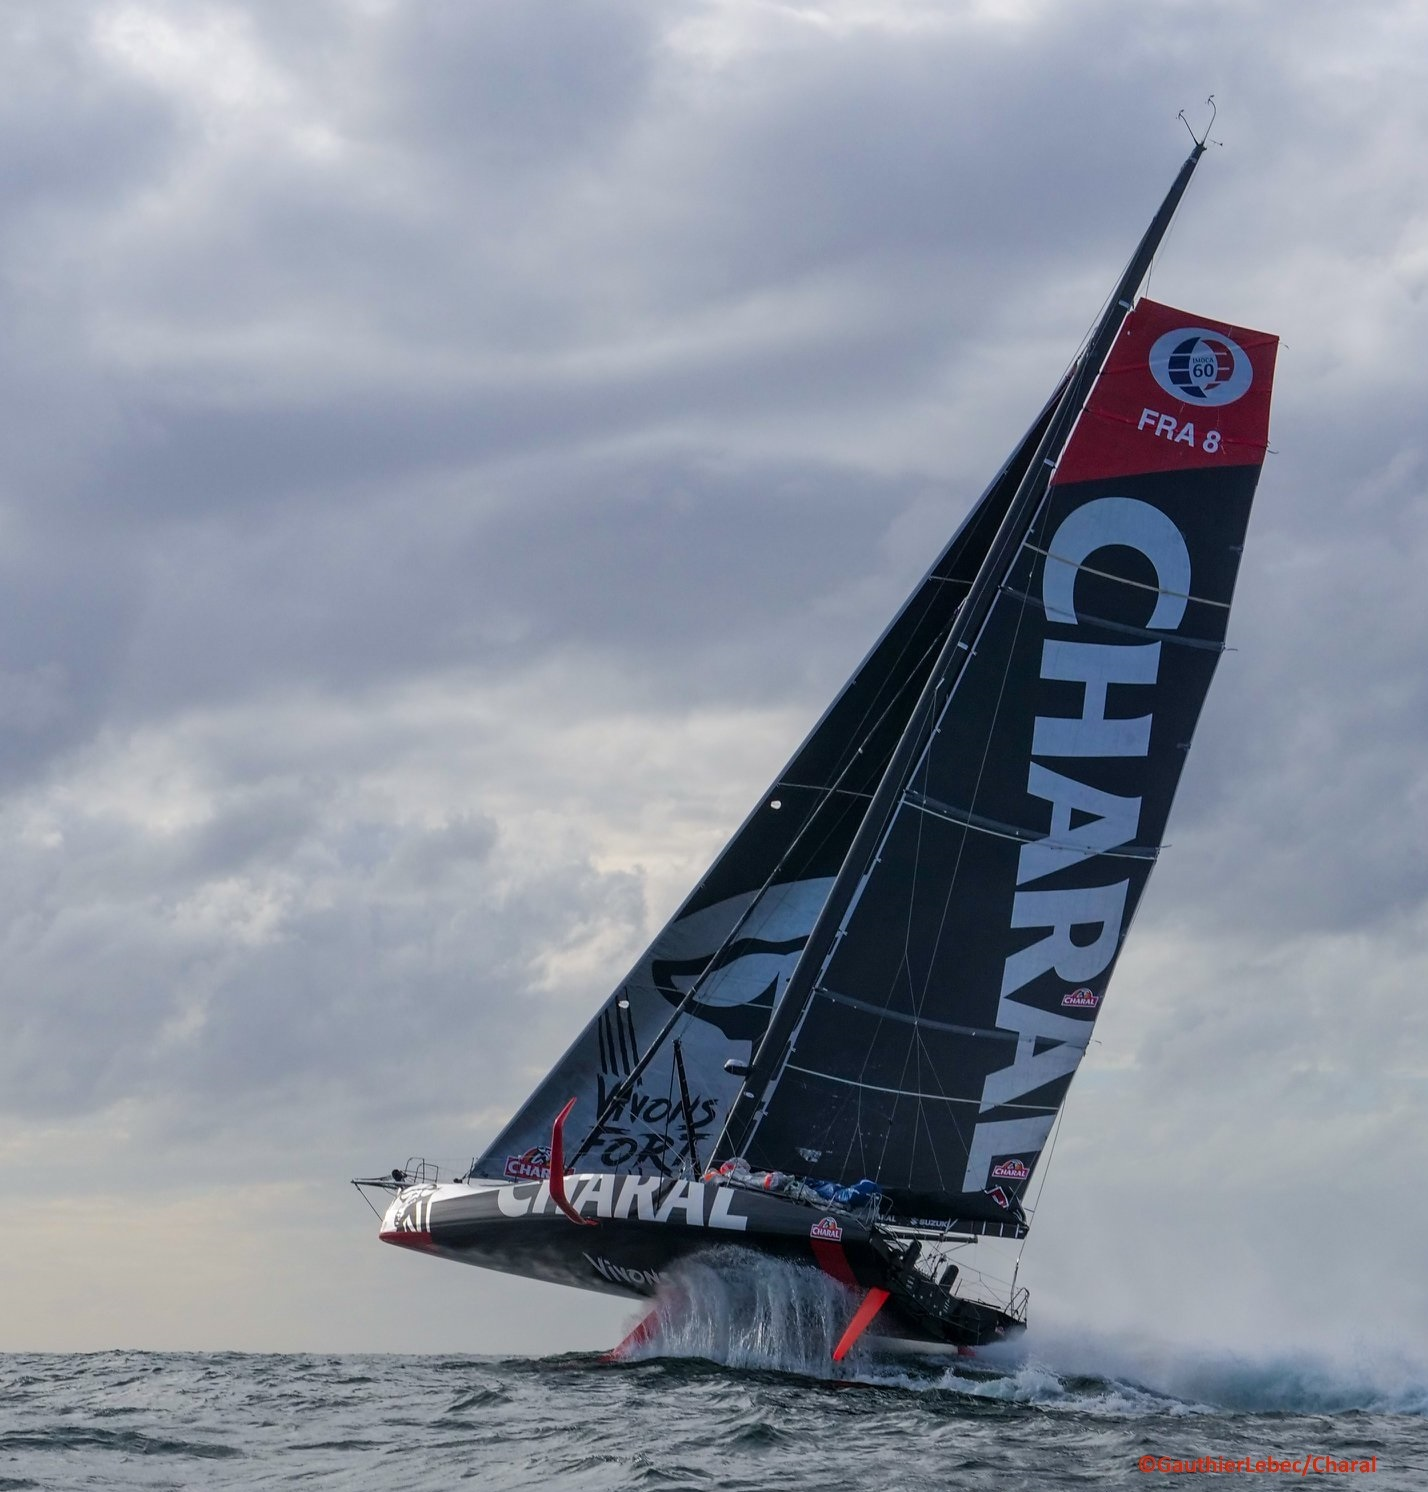 Imoca Charal Foiling - carbon racing boat